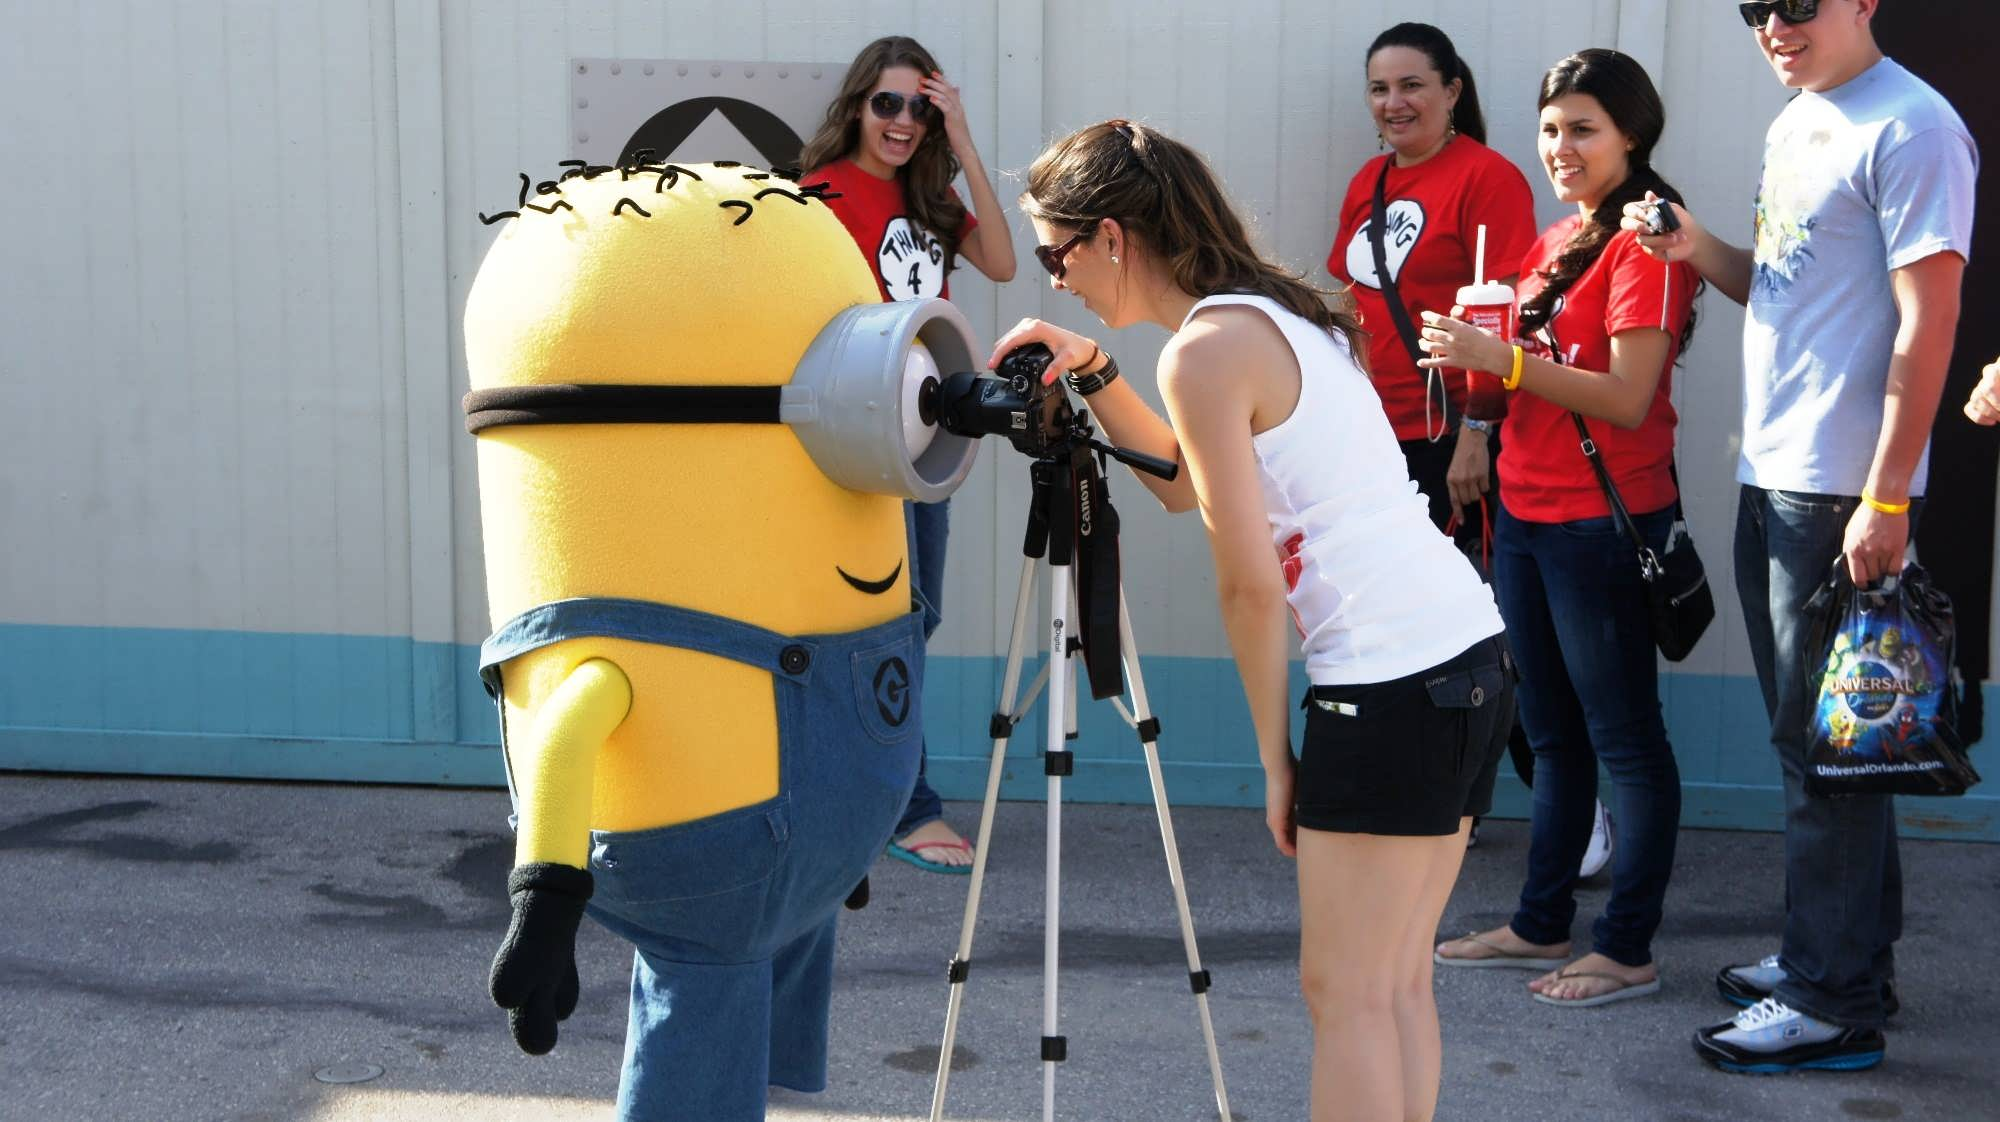 A minion from Despicable Me greets a guest